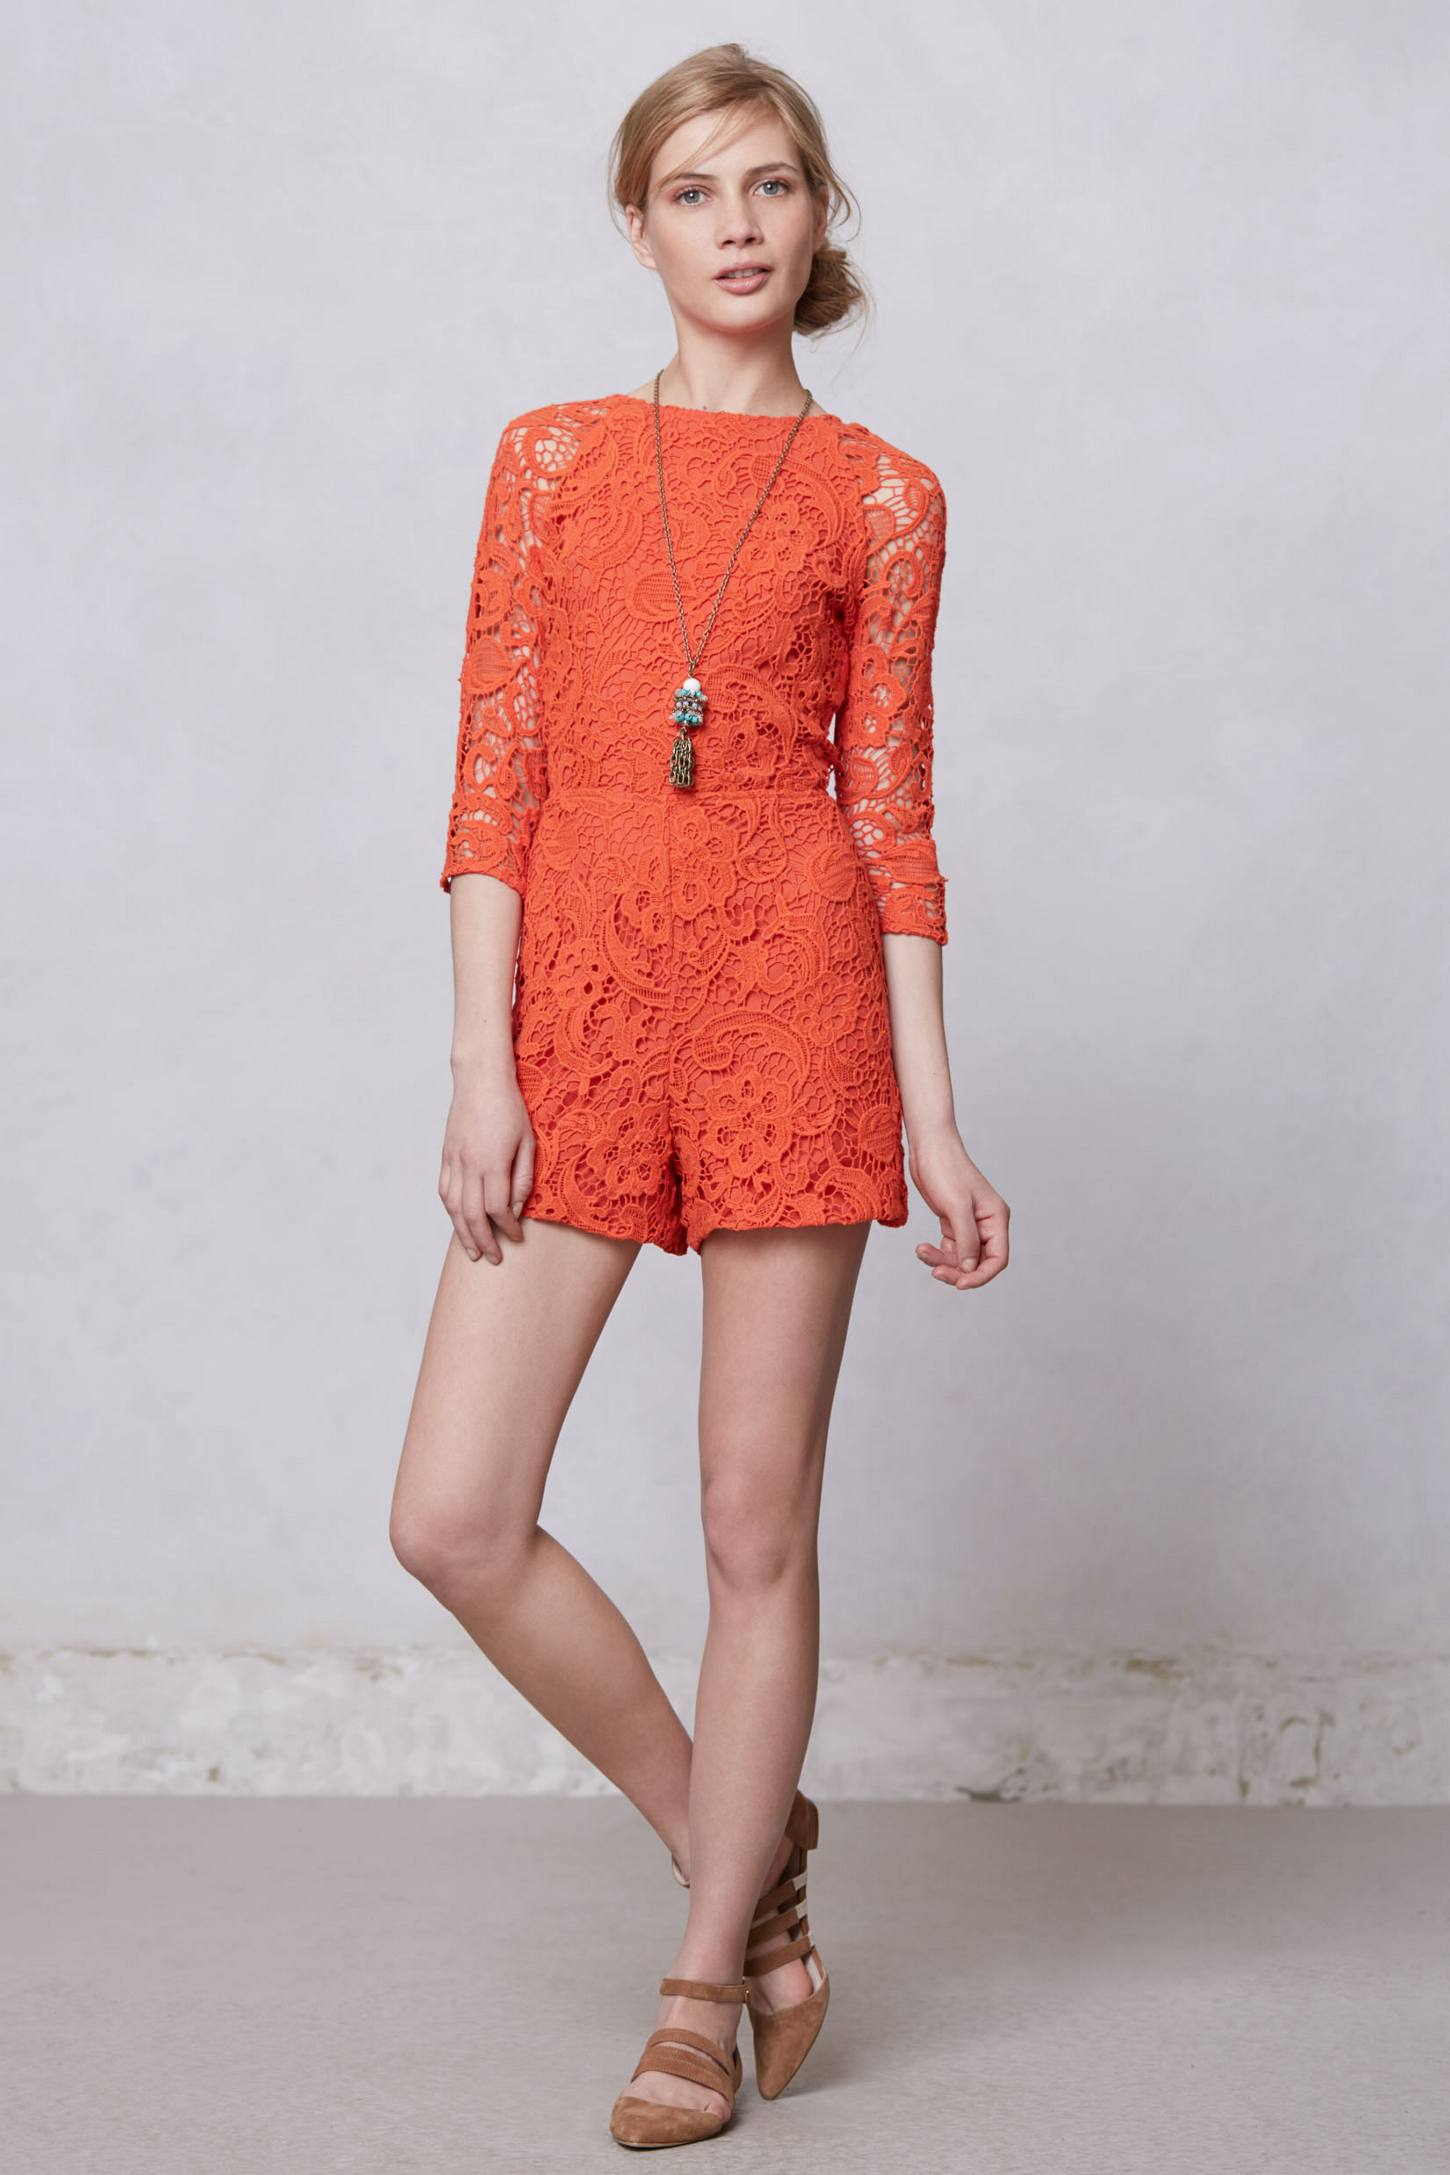 Accordance Lace Romper